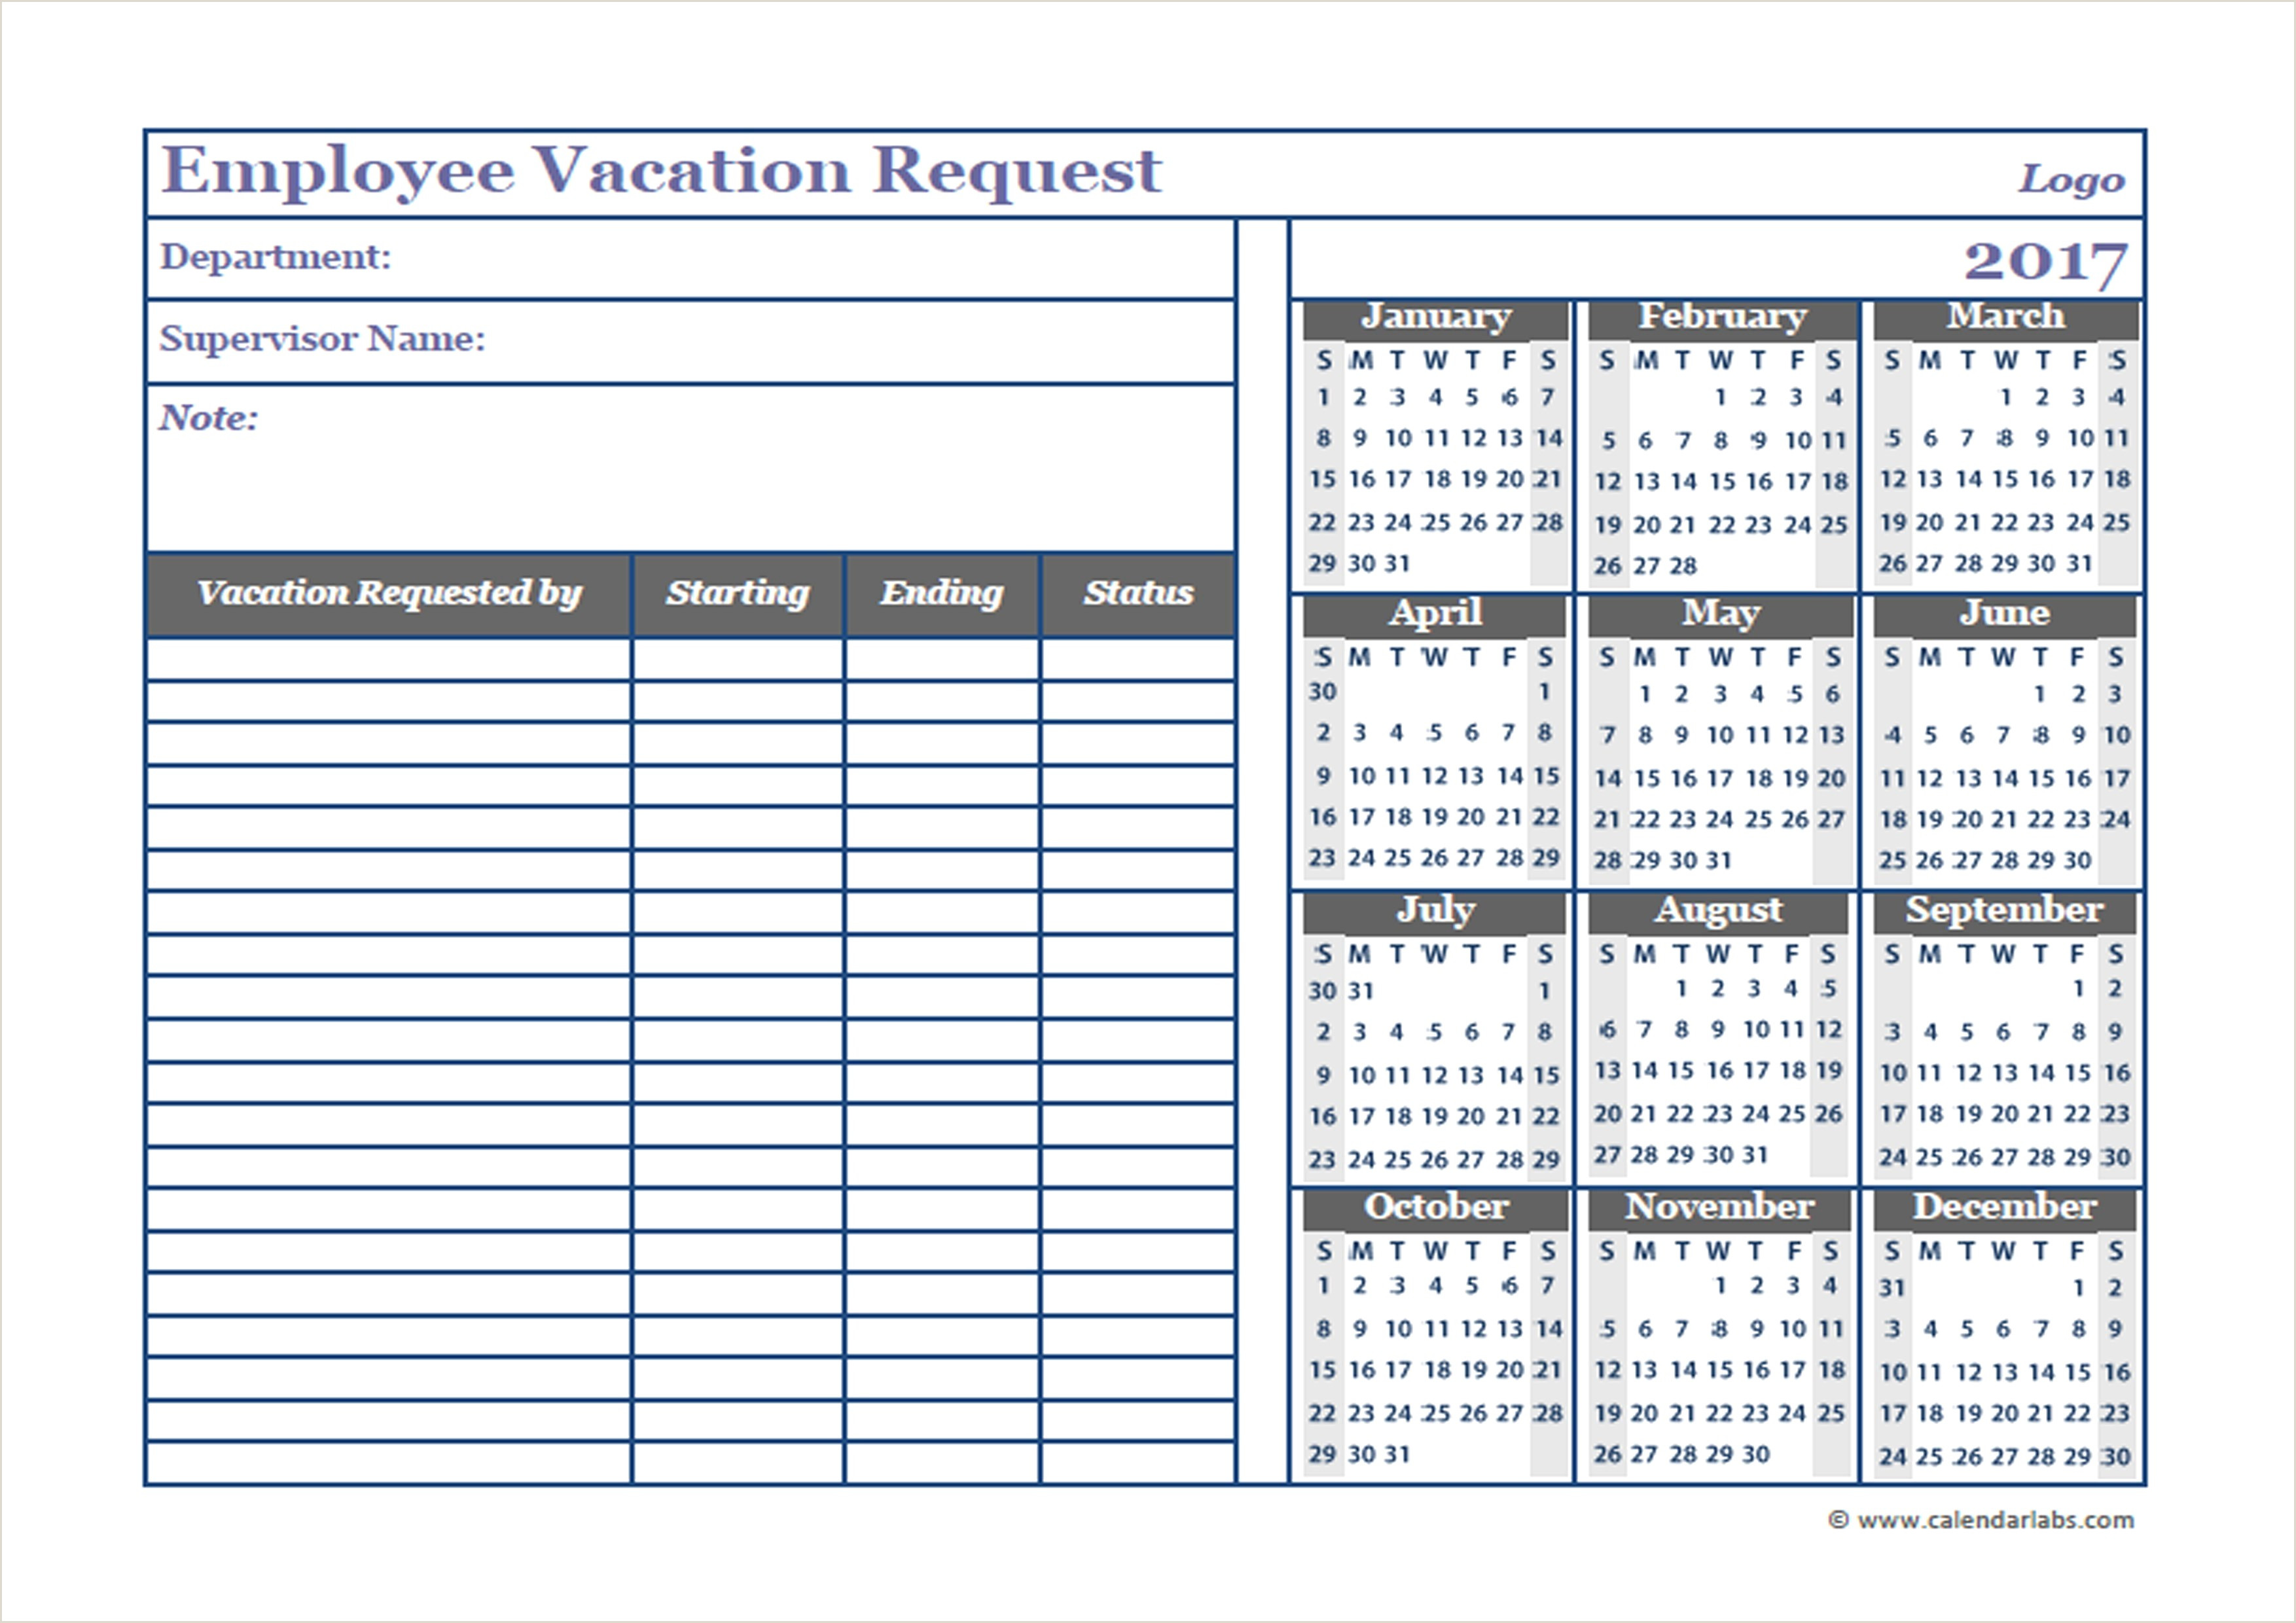 Employee Vacation Calendar Template 2017 Printable for Free